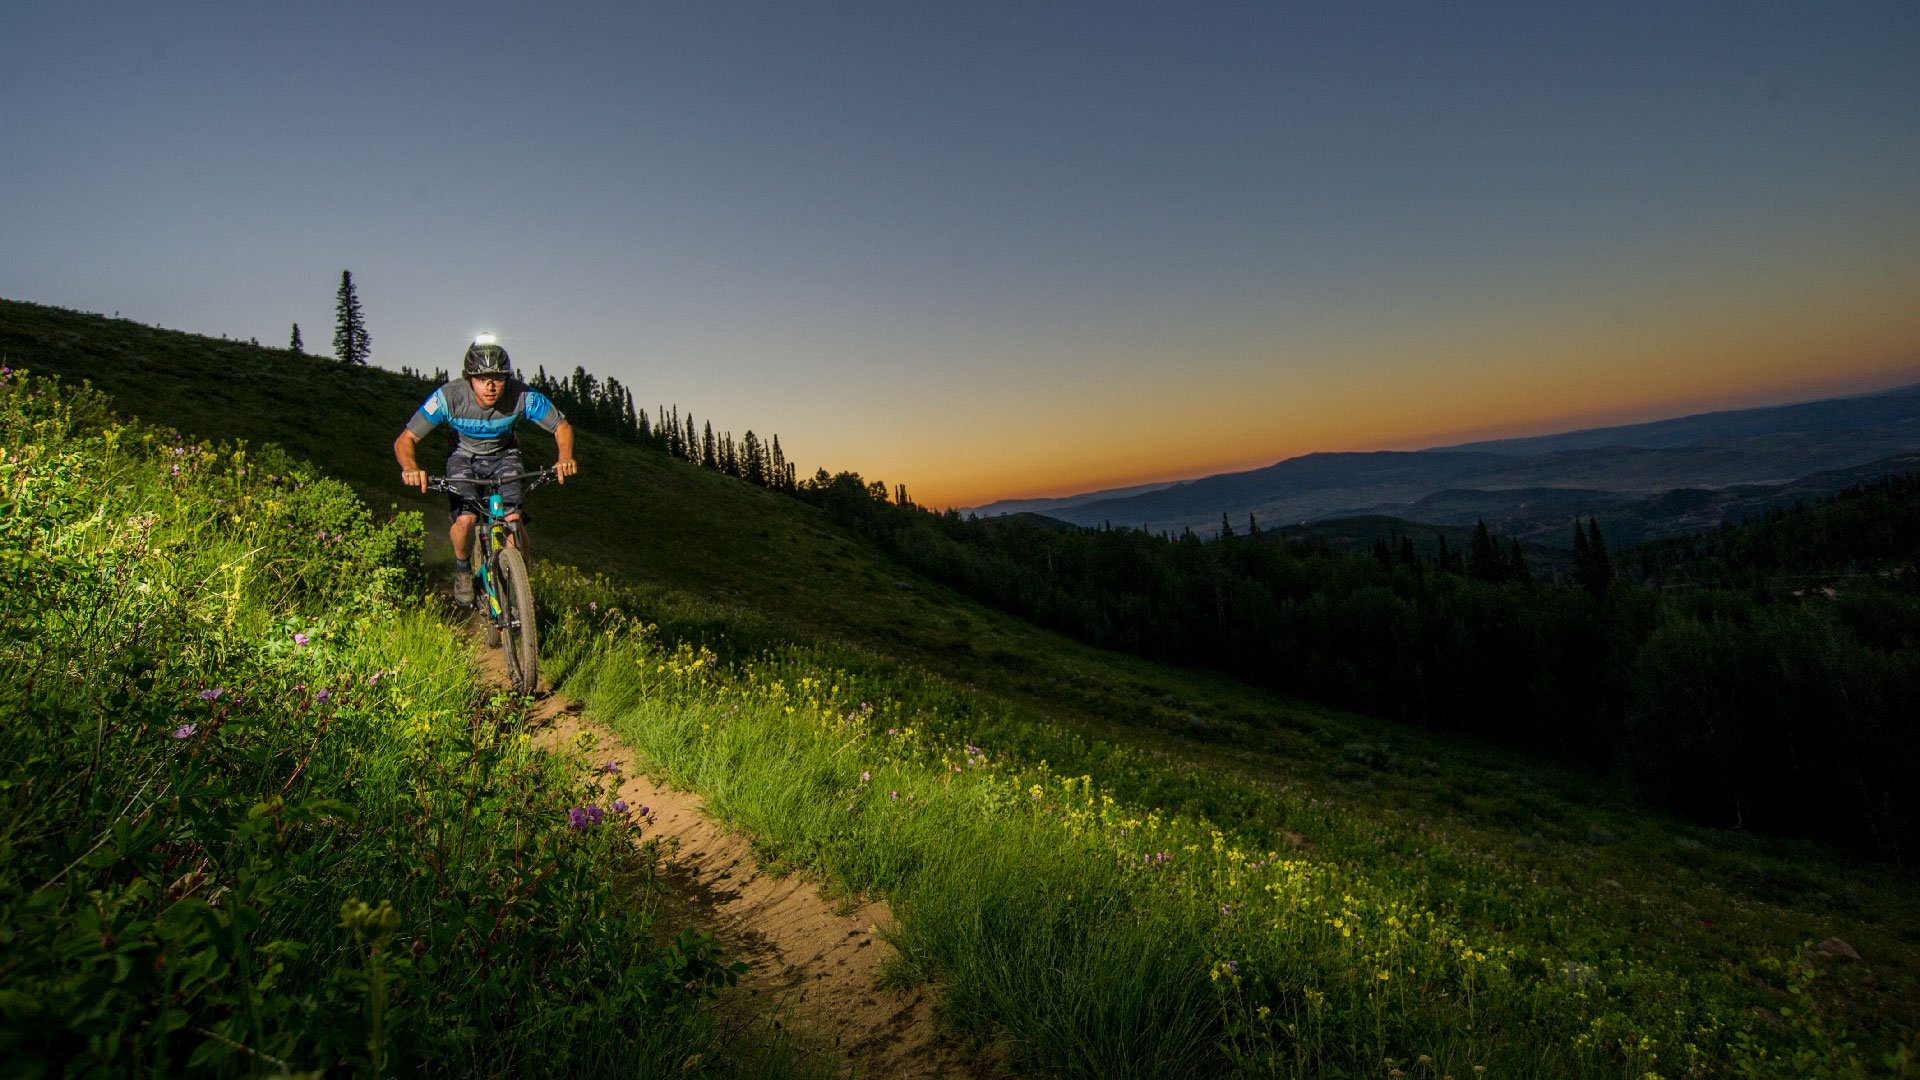 Guided Night Riding Mountain Bike Tour from White Pine Touring in Park City, UT.